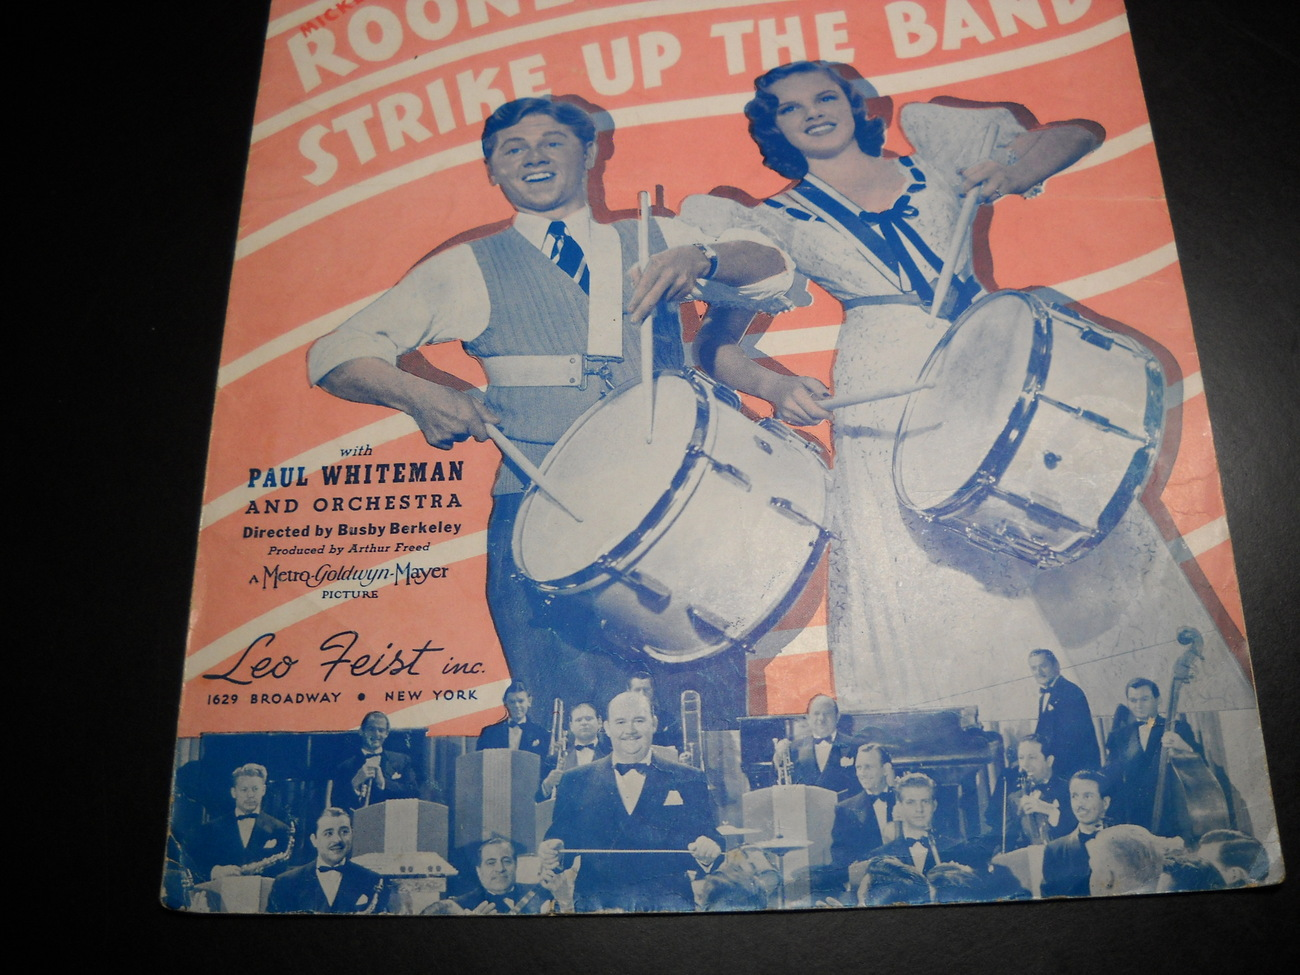 Sheet_music_our_love_affair_from_strike_up_the_band_judy_garland_mickey_rooney__10